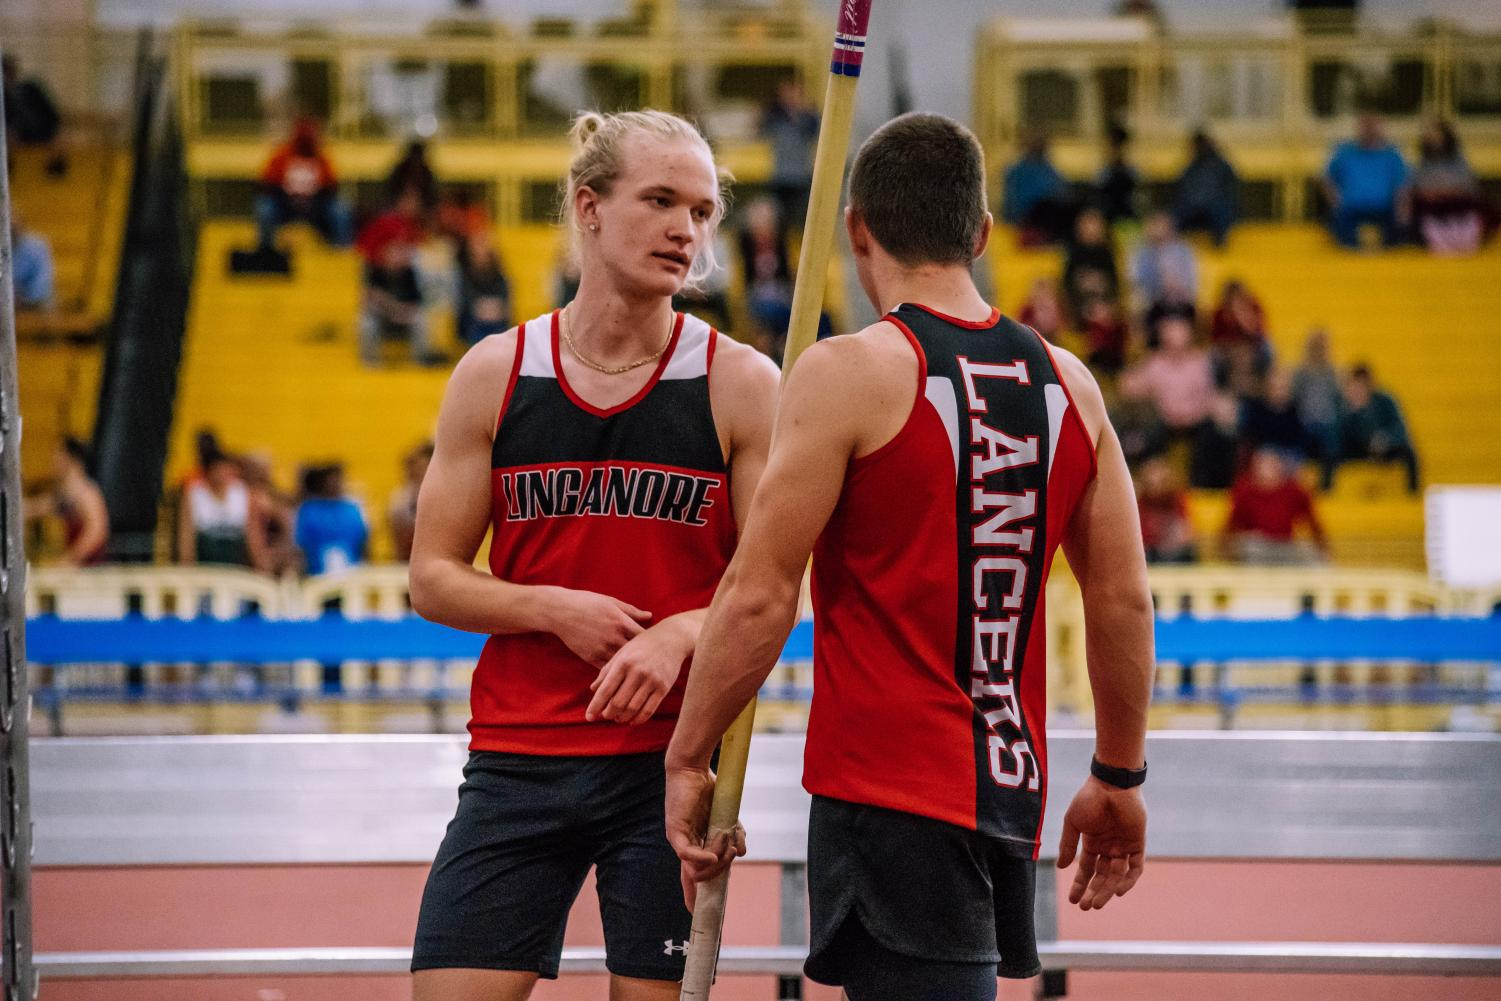 Senior pole vaulter Carter Holsinger gives sophomore pole vaulter Quinn Ruch advice before he attempts to qualify for states